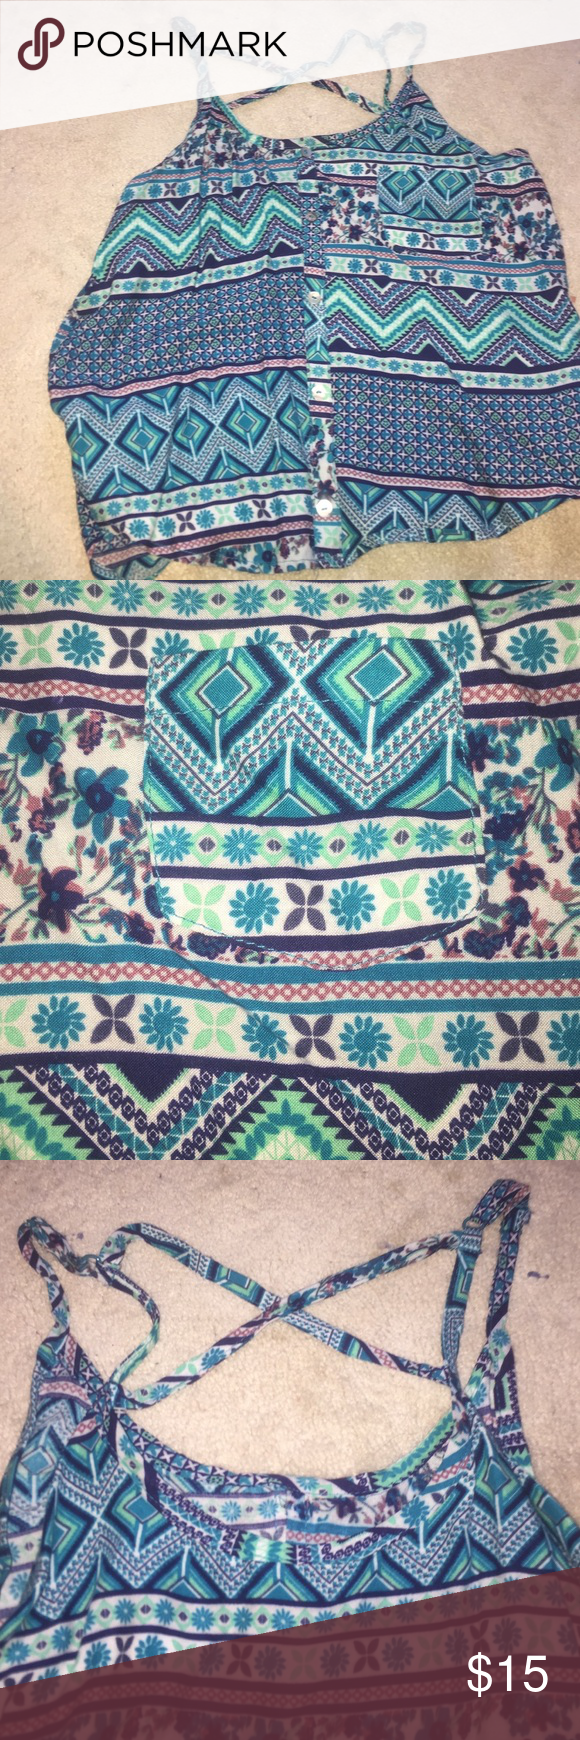 Teal printed cropped tank top Strapped back (shown in picture) NWOT Rue21 Tops Tank Tops